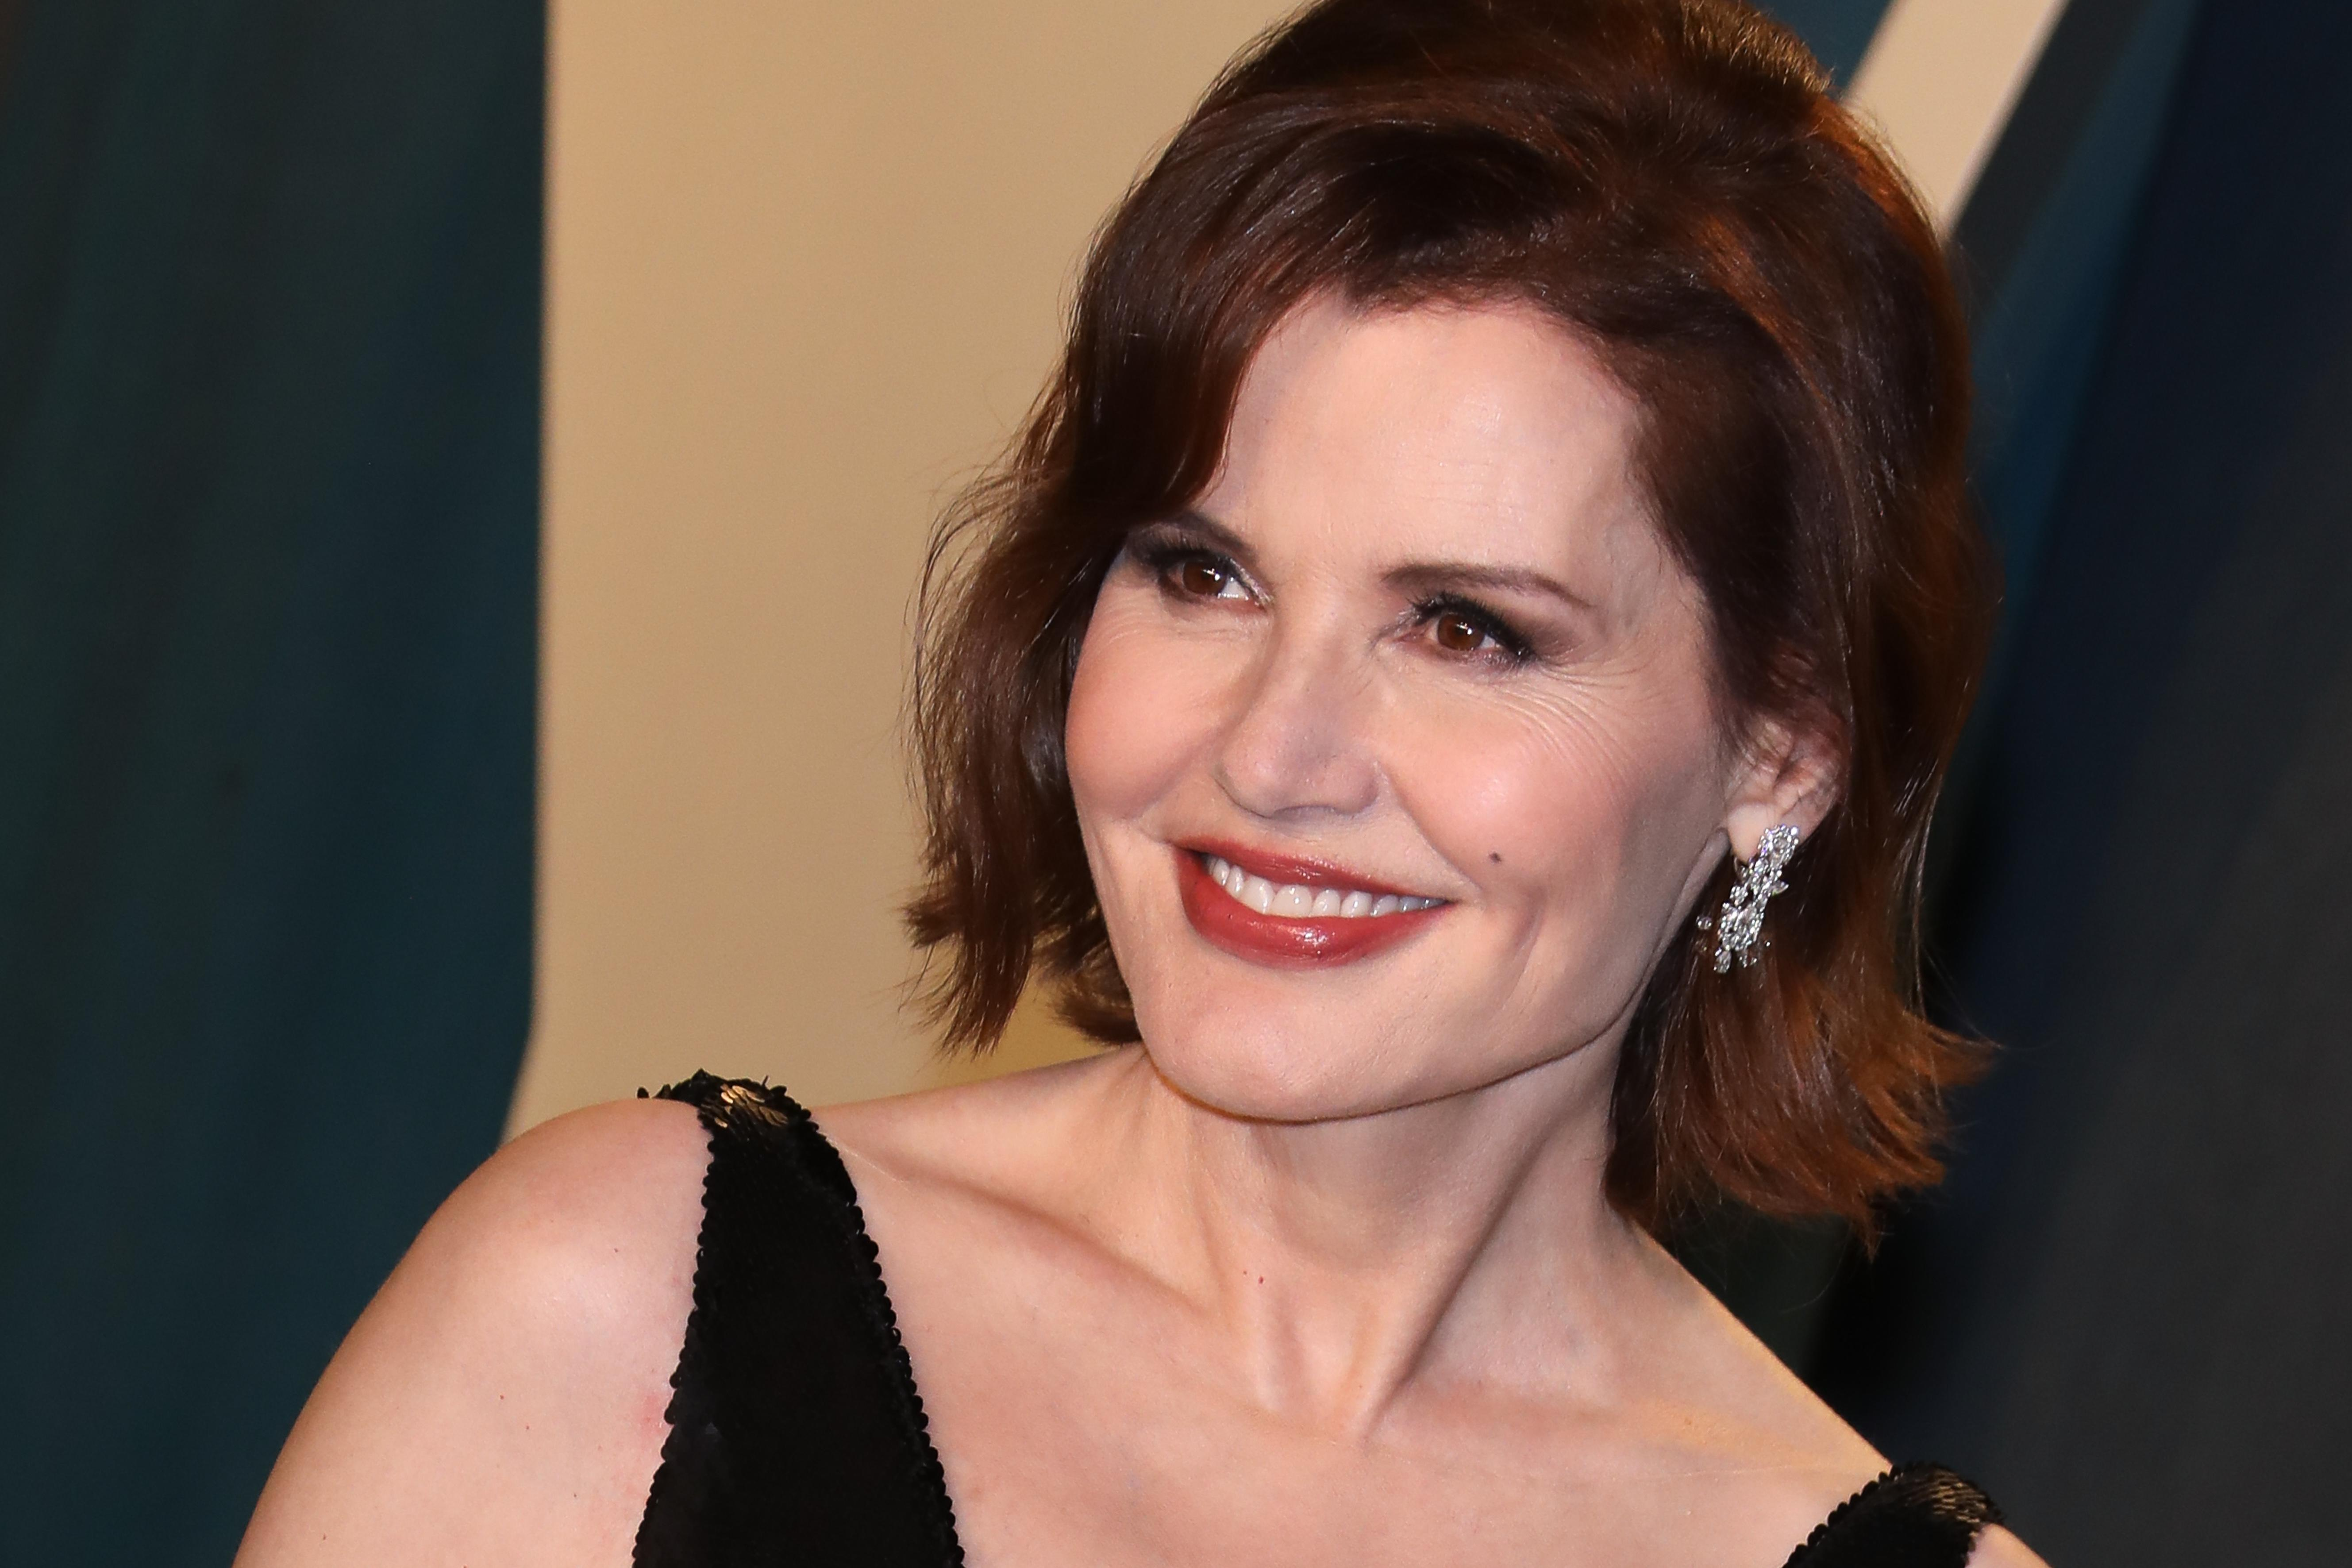 Geena Davis says acting roles were 'scarce' after she turned 40